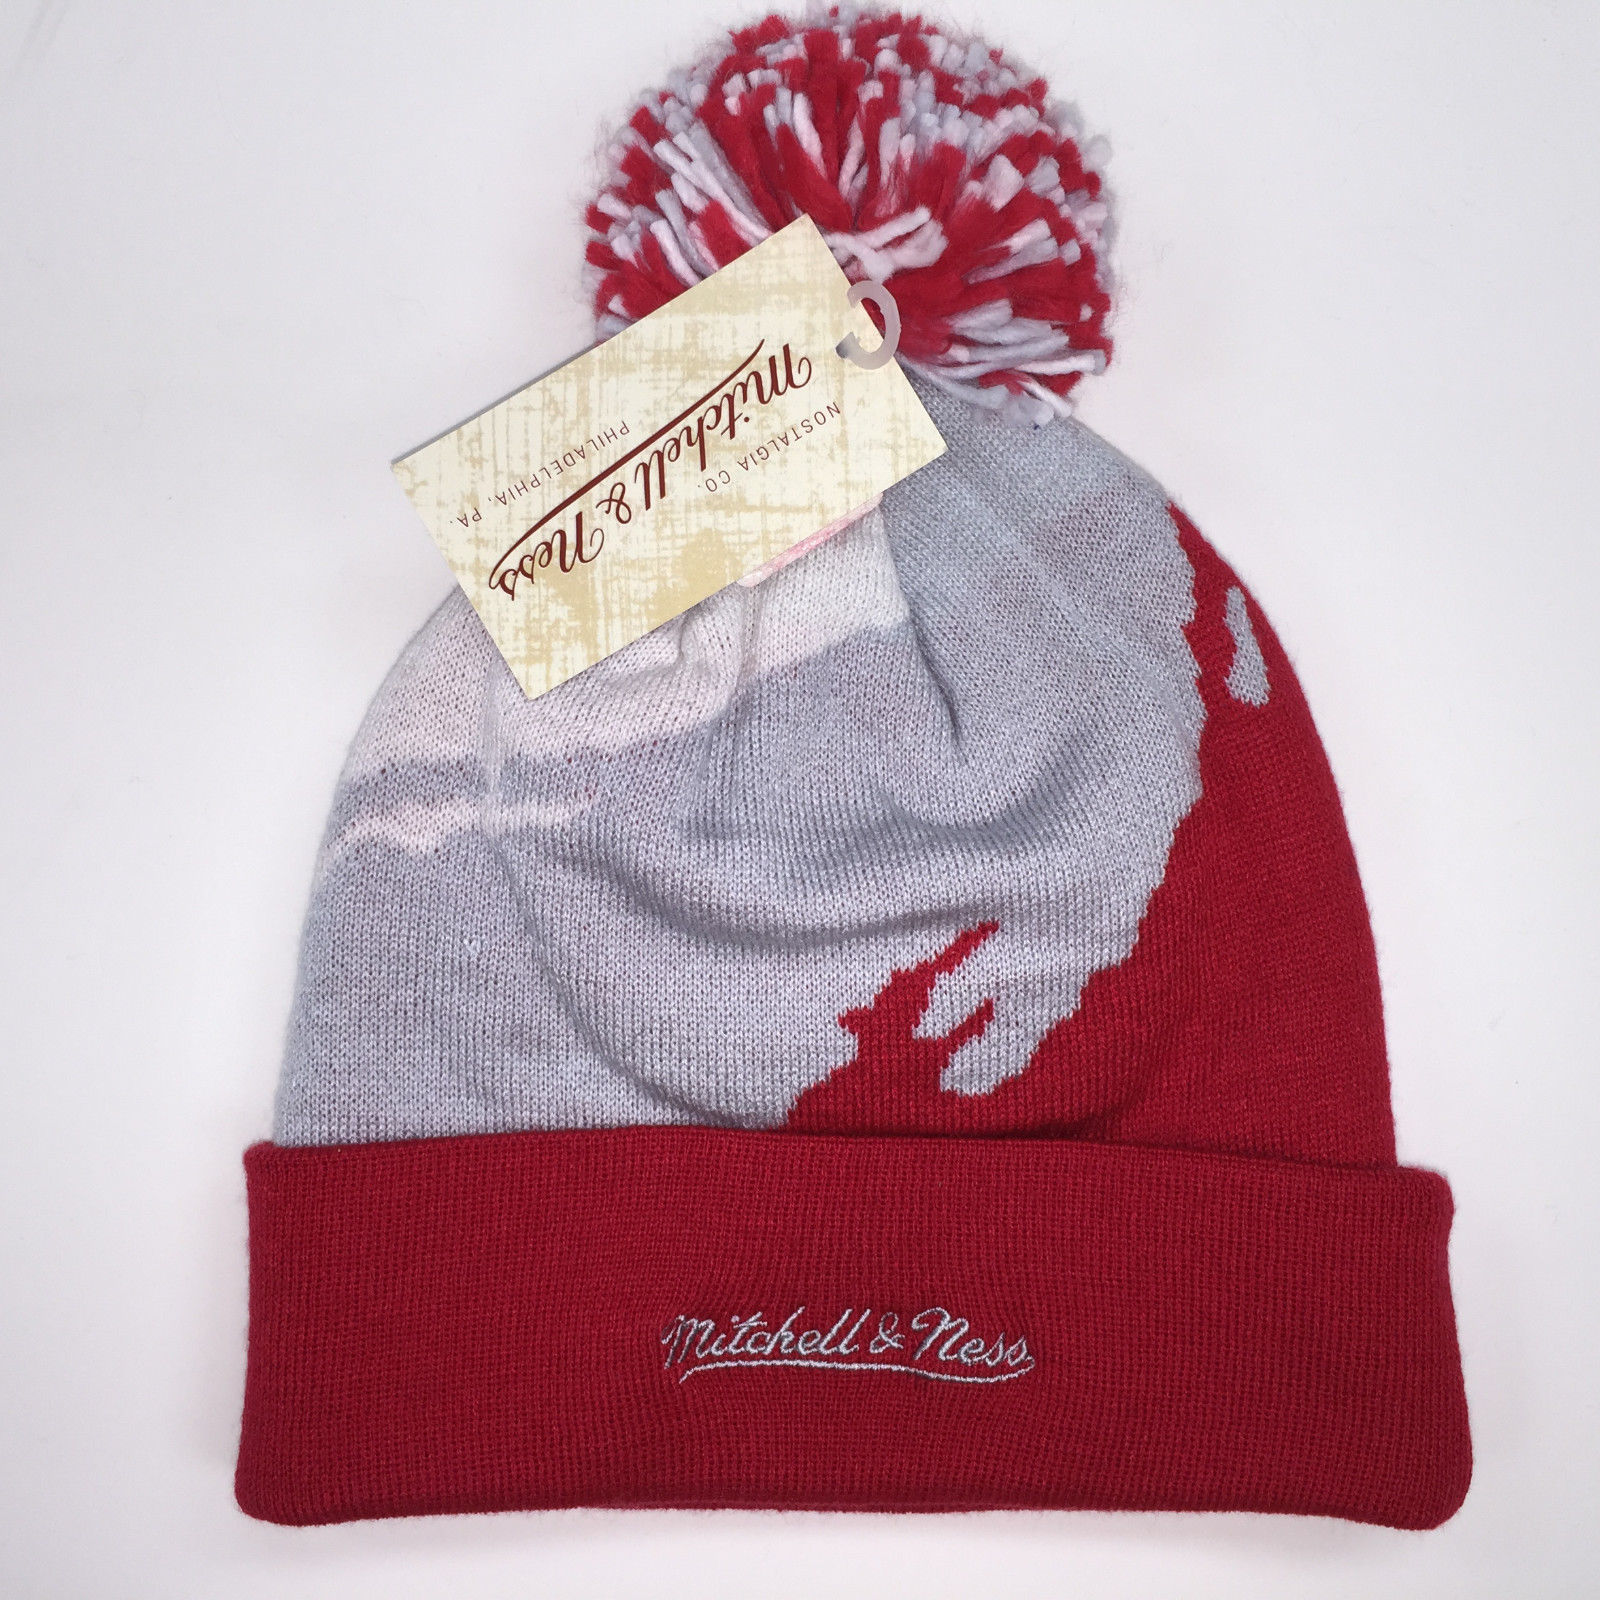 Mitchell & Ness NHL Detroit Red Wings Cuffed Pom Knit Beanie 10382